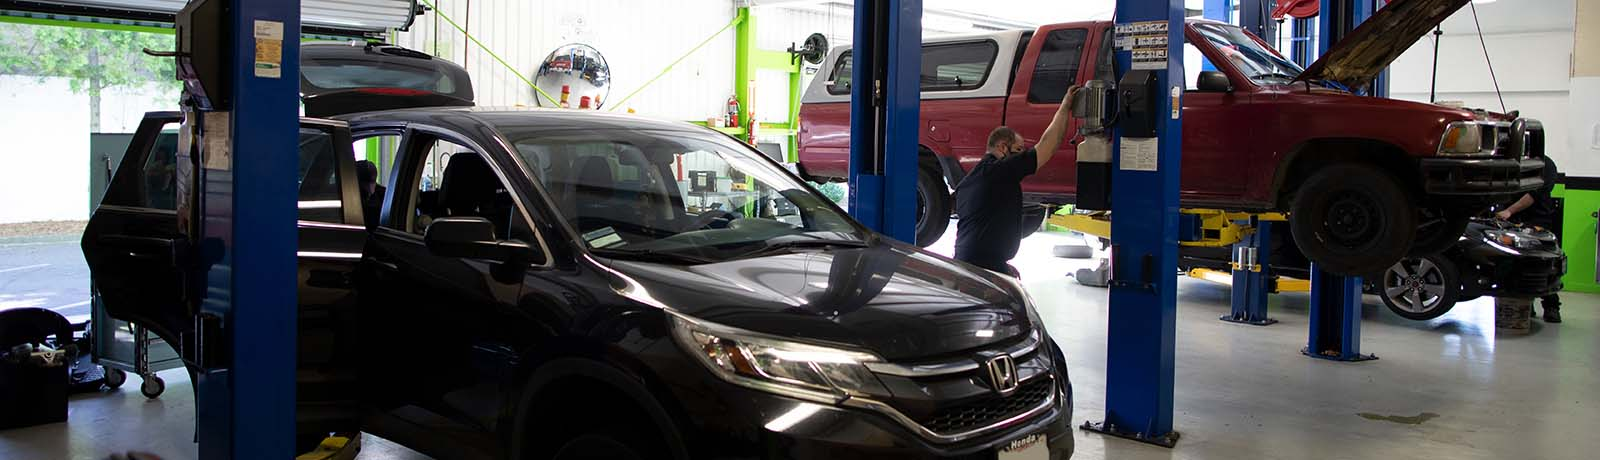 Auto Mechanic Repairing Car at GreenTech Automotive